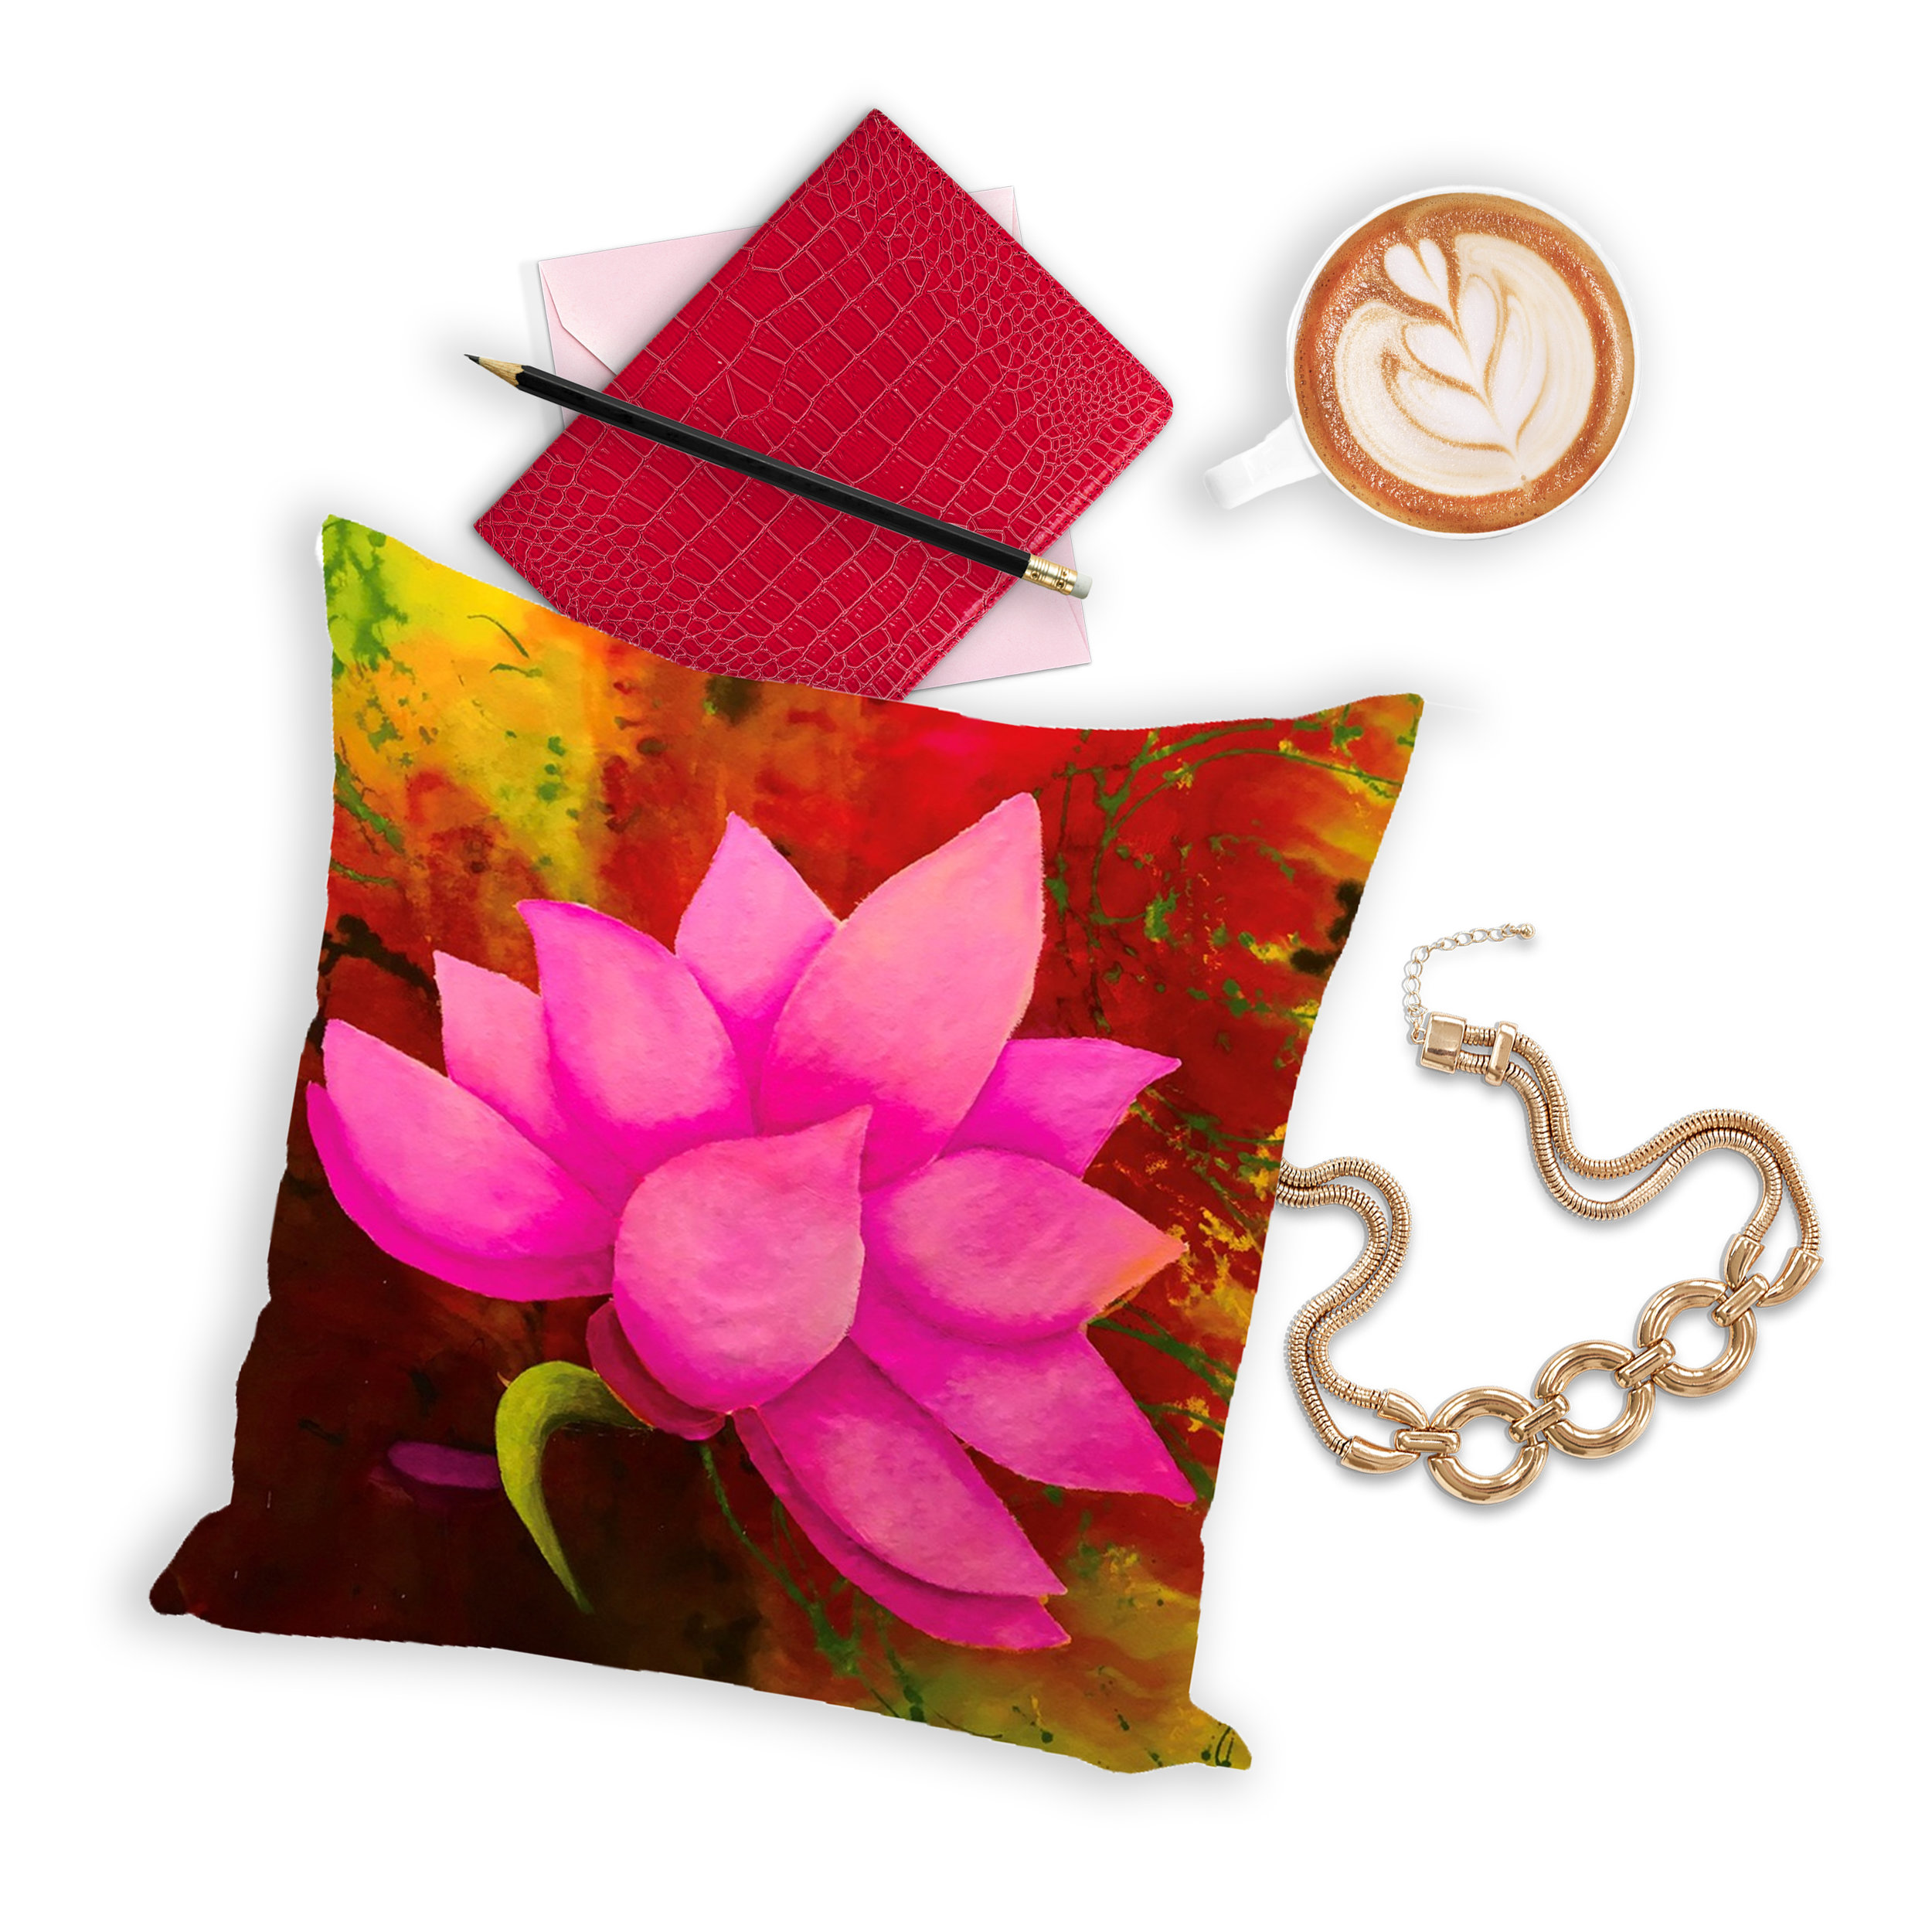 ambuja-pillow-mockup-with-notebook.jpg